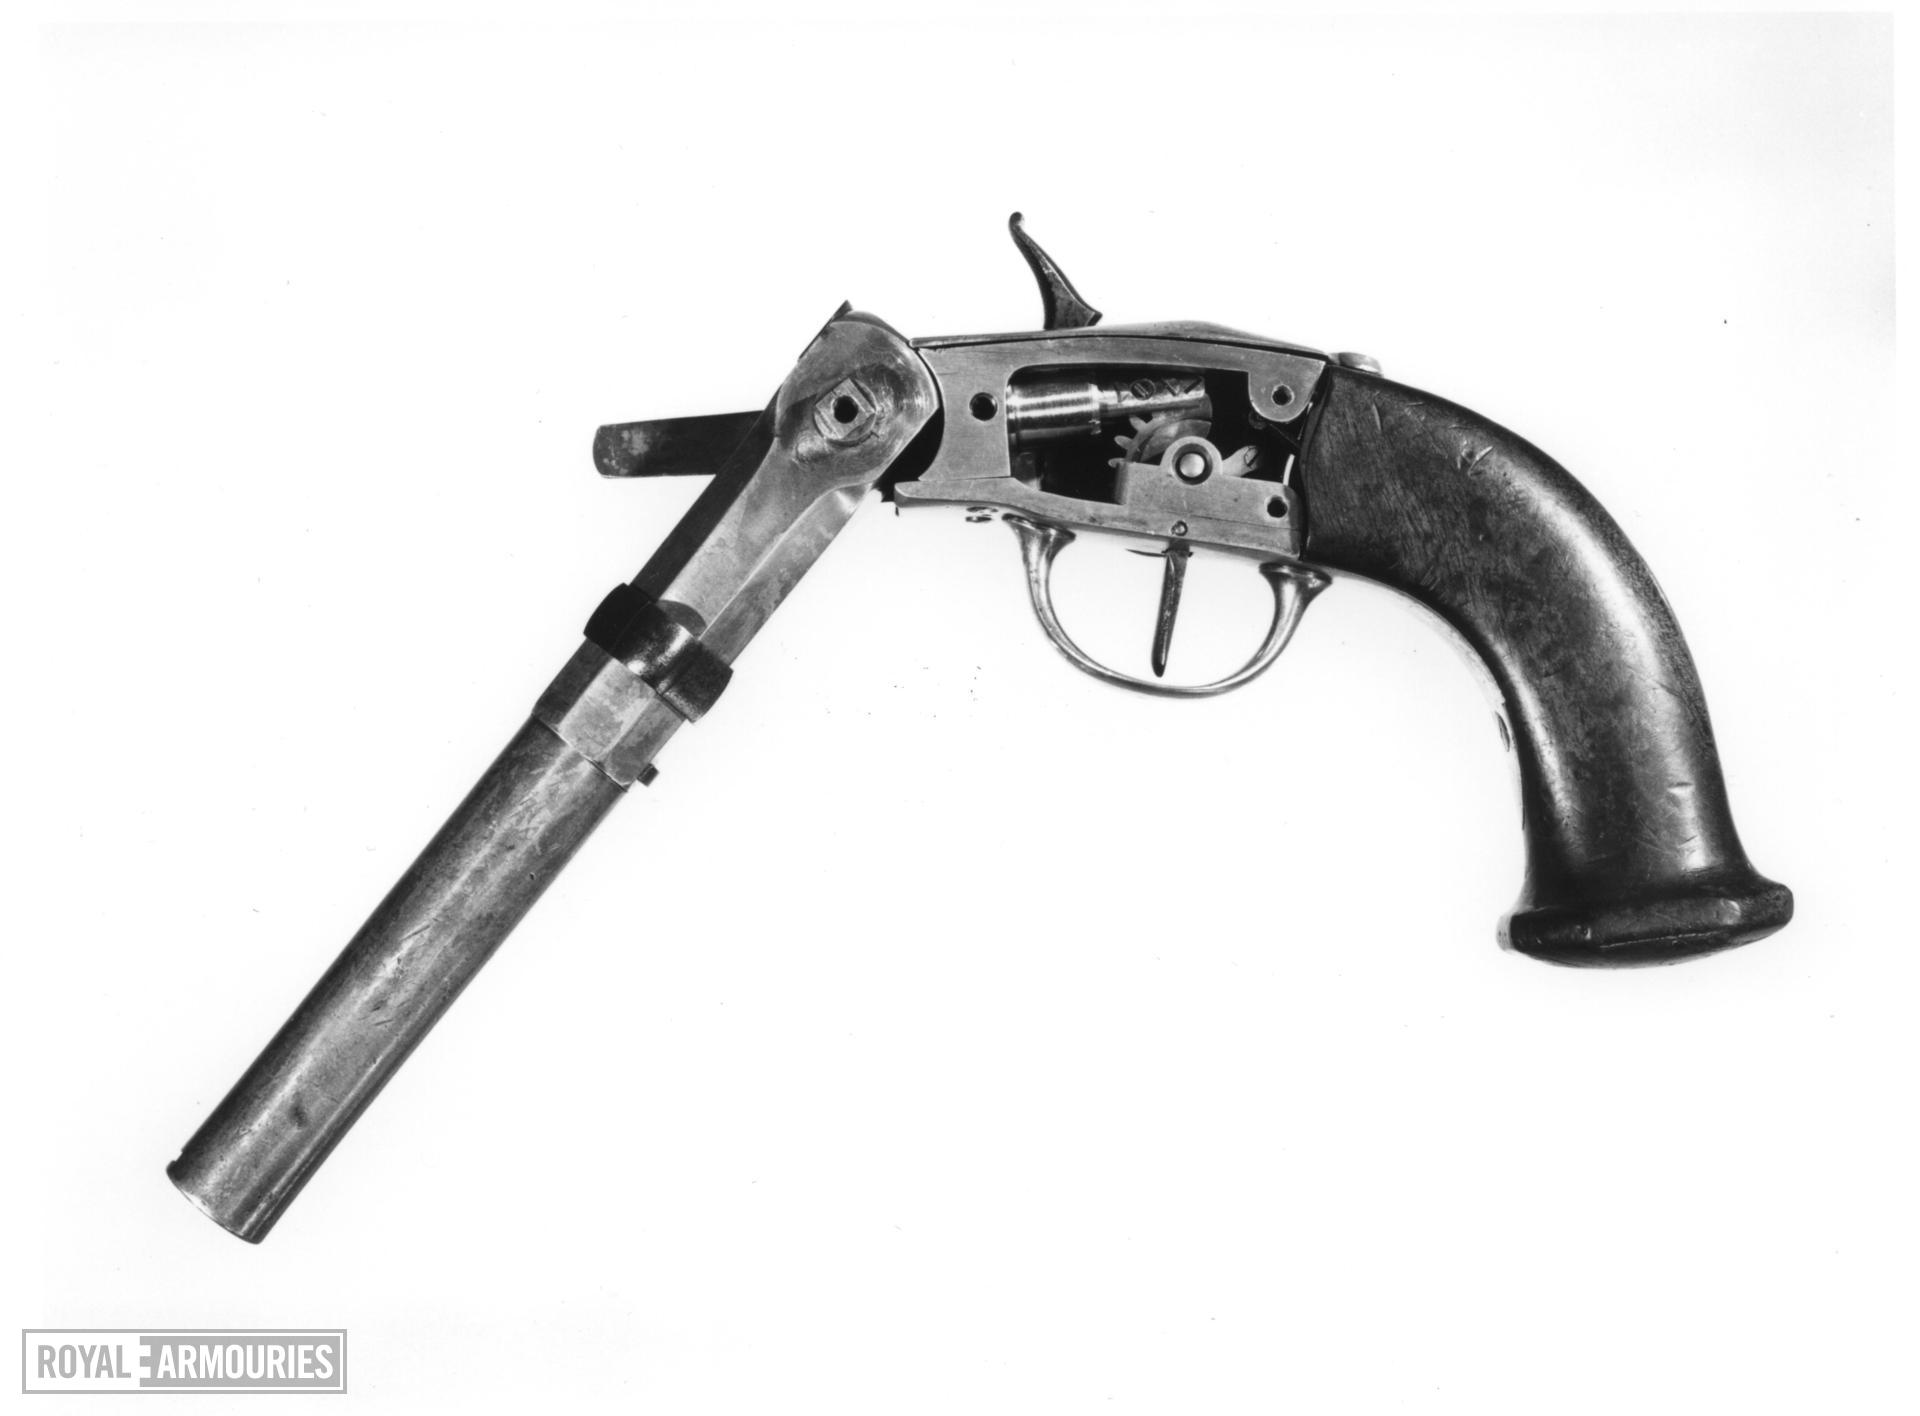 Breech-loading pistol Designed to utilise the heat from air as it is rapidly compressed to ignite the charge. pistol by Pauly c 1814